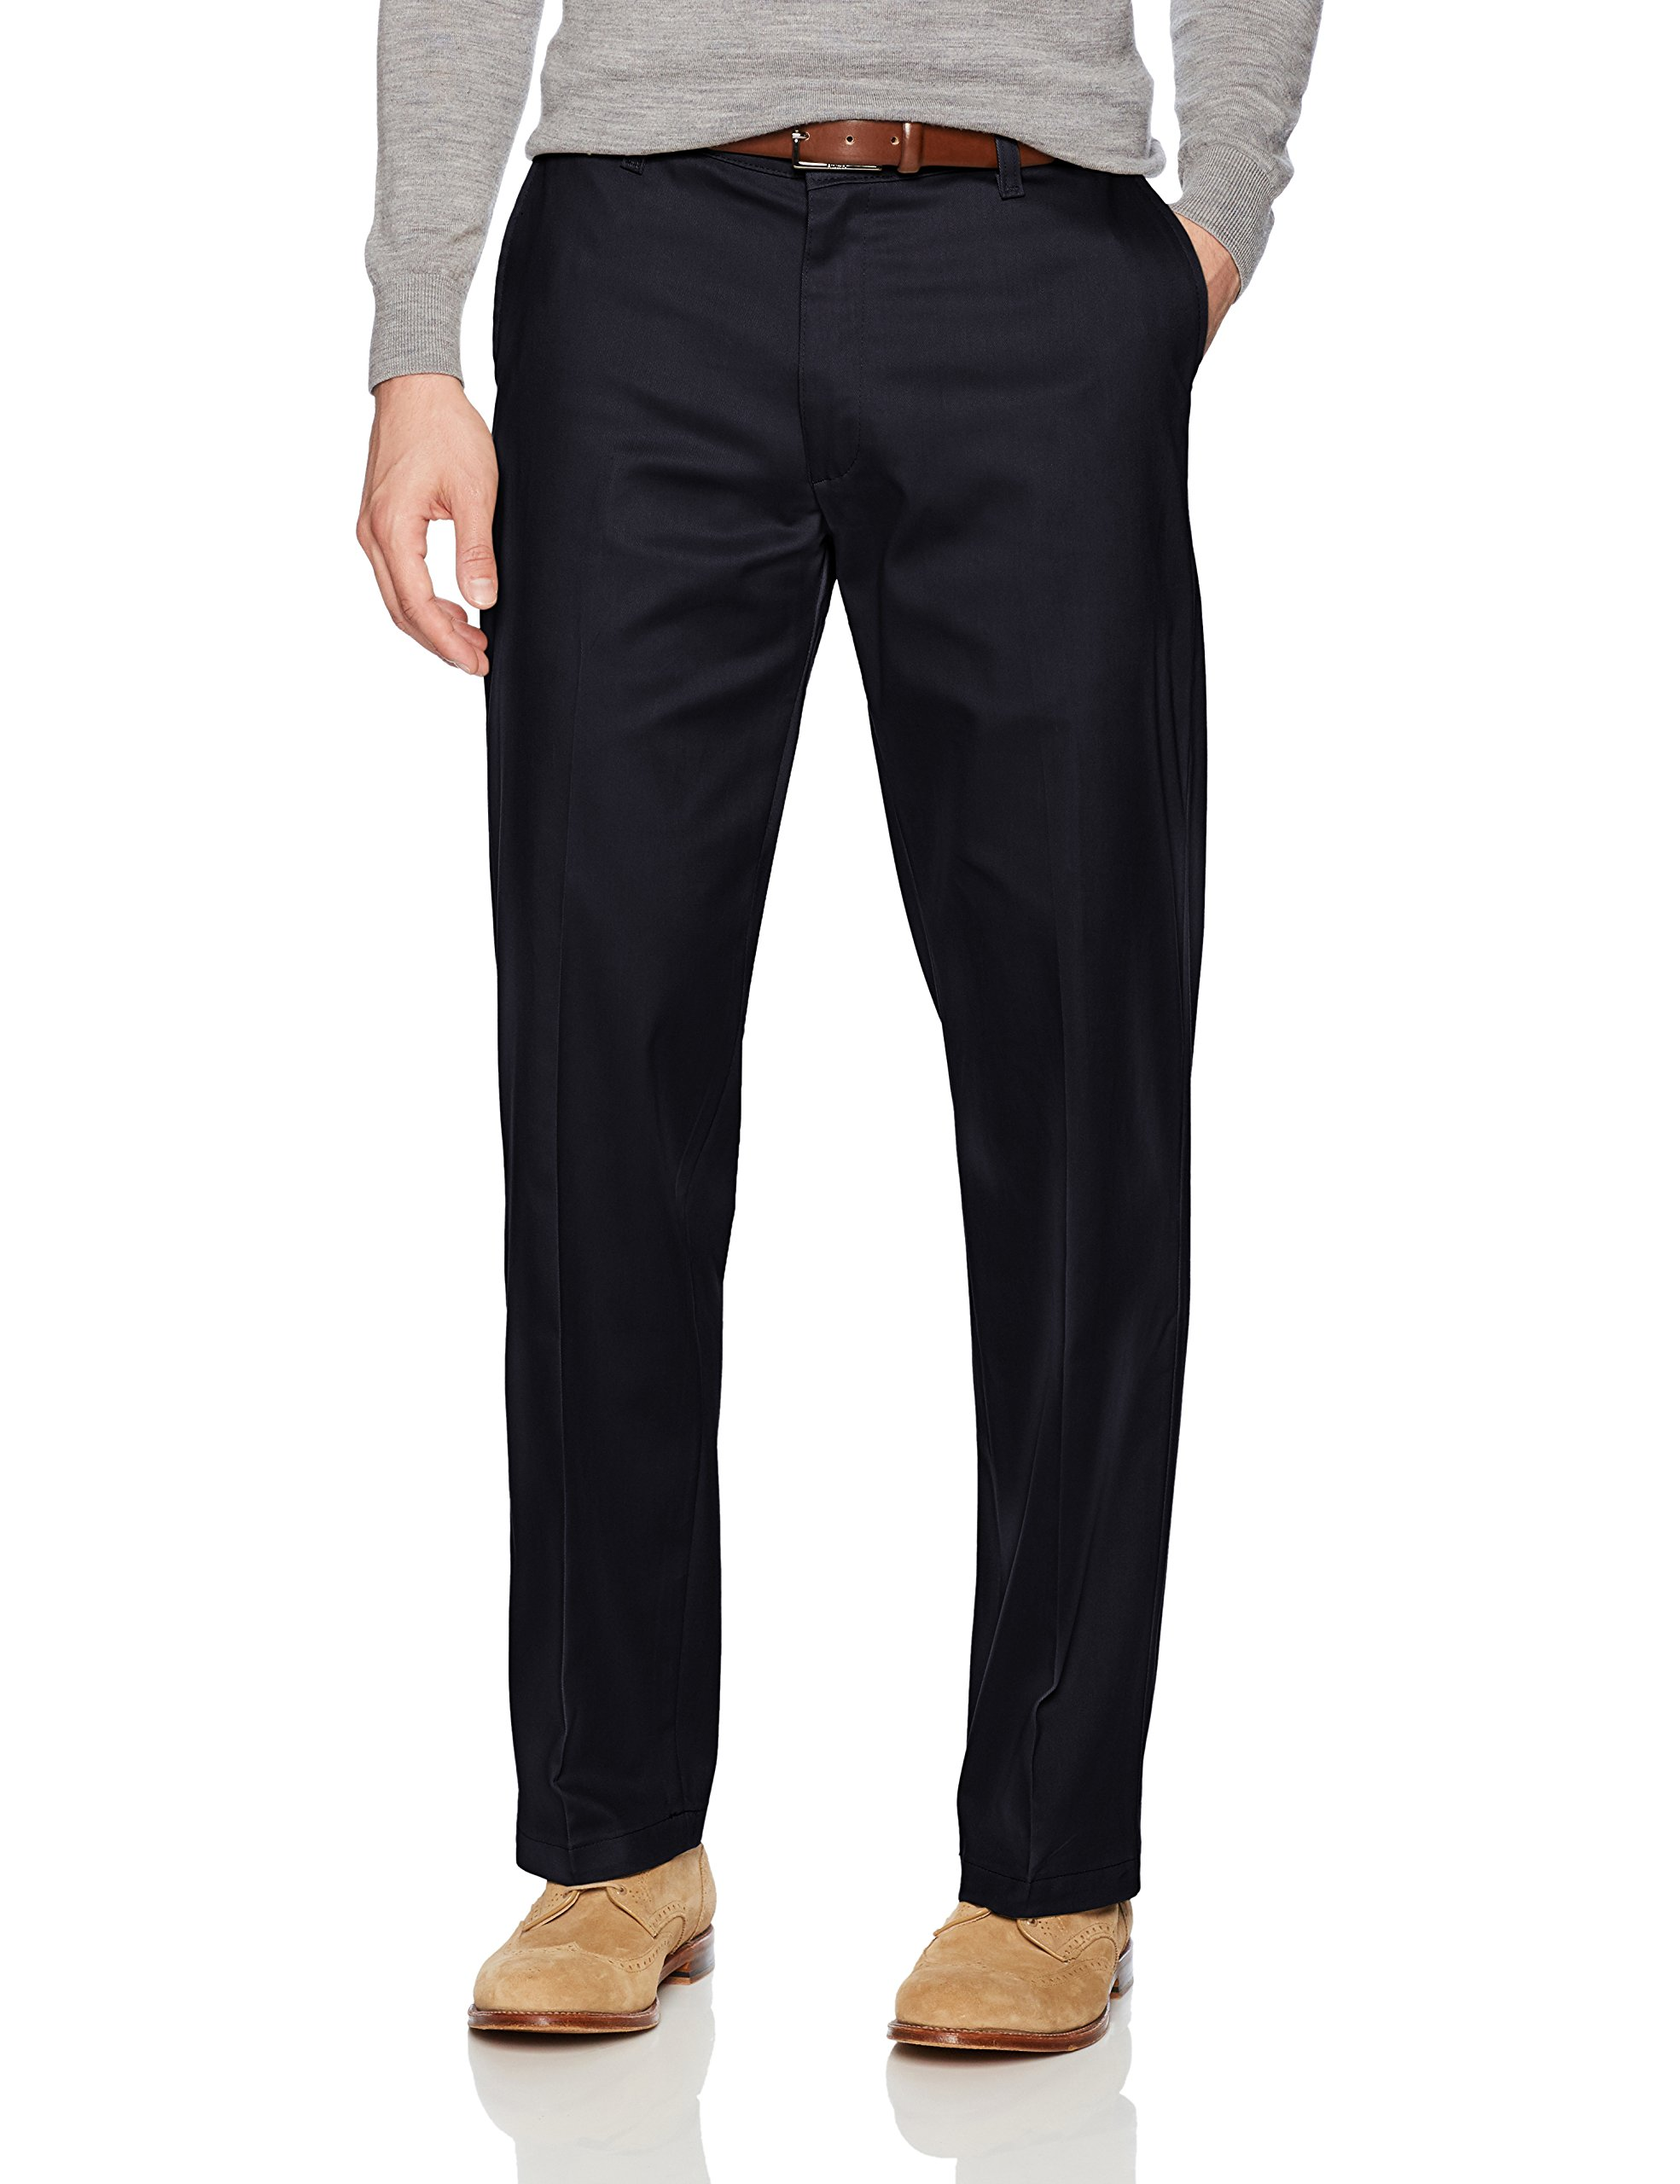 LEE Men's Total Freedom Stretch Relaxed Fit Flat Front Pant, Navy, 34W x 30L